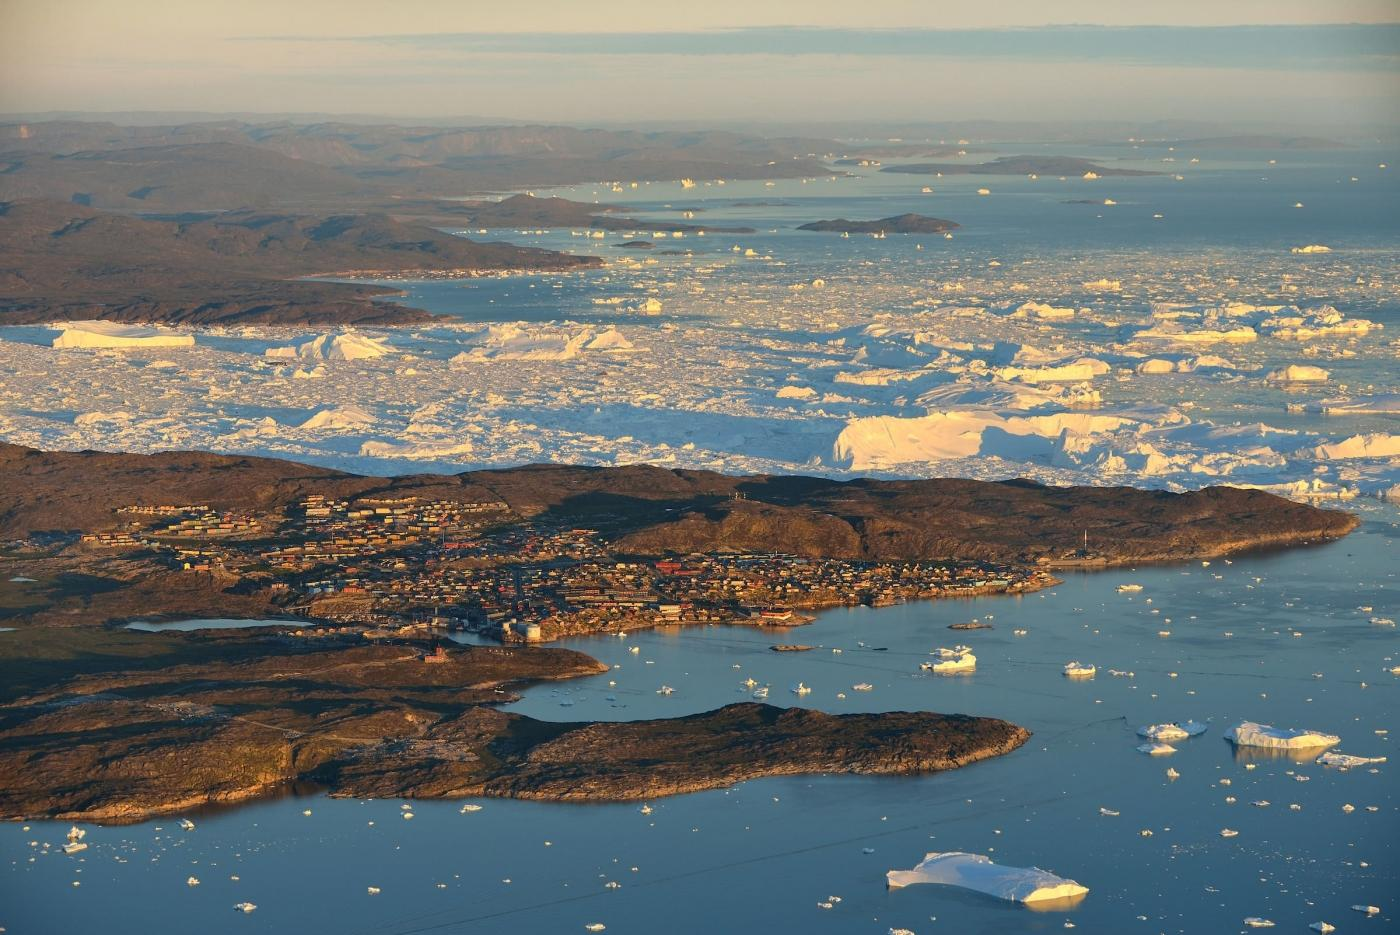 Ilulissat and Ilulissat Icefjord from the air. Photo by Rino Rasmussen